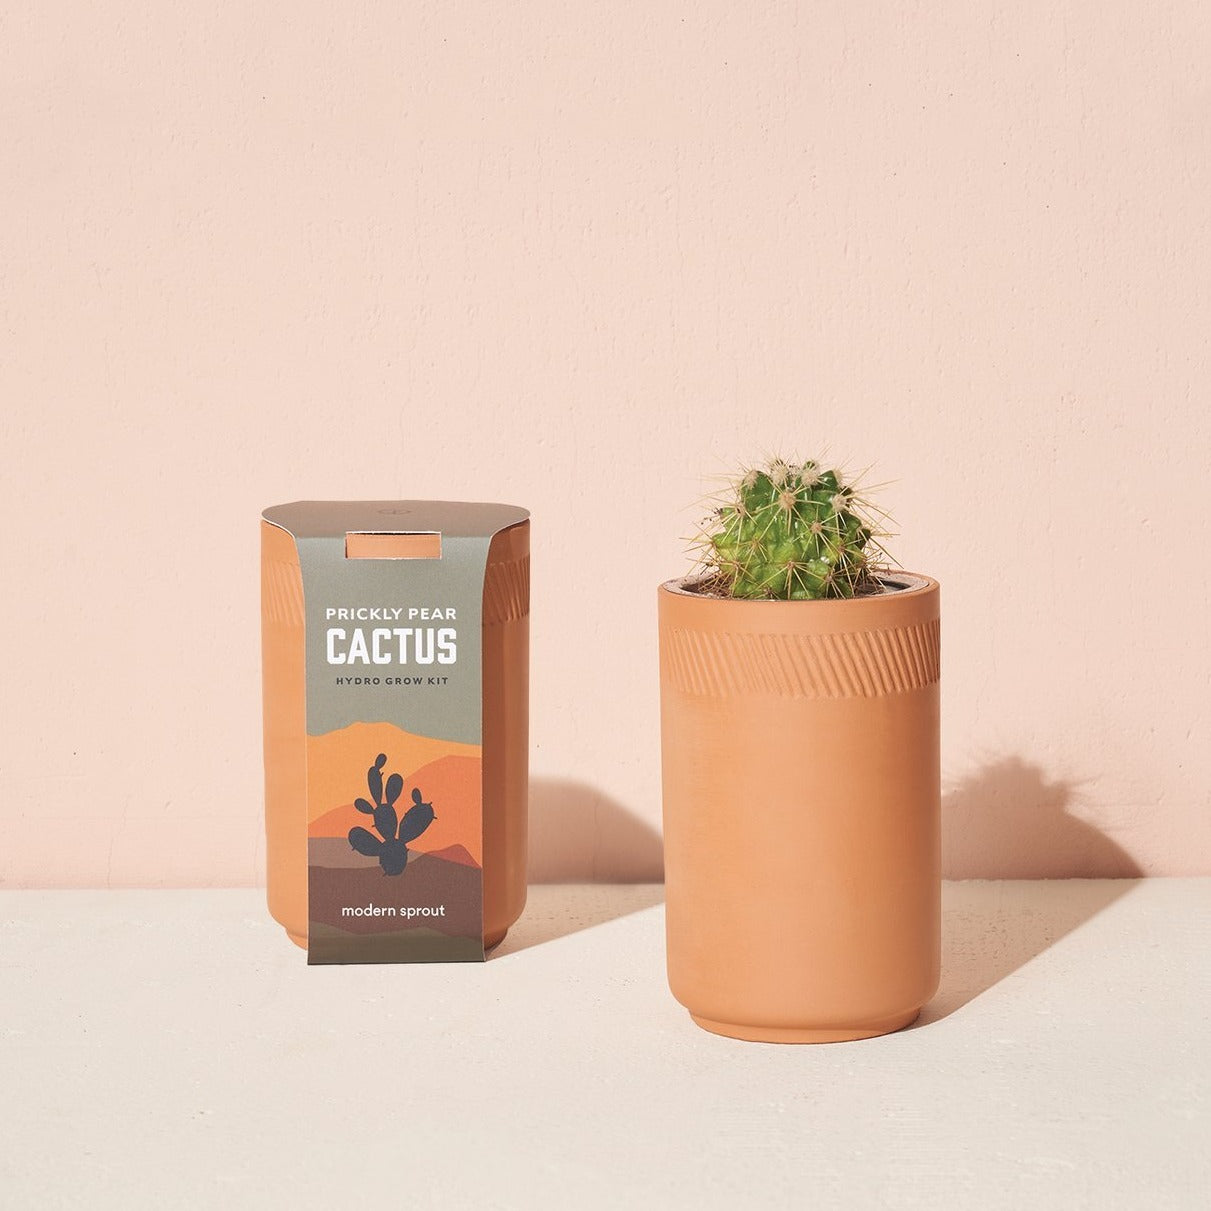 Terracotta Prickly Pear Cactus Grow Kit-Picnic-sf